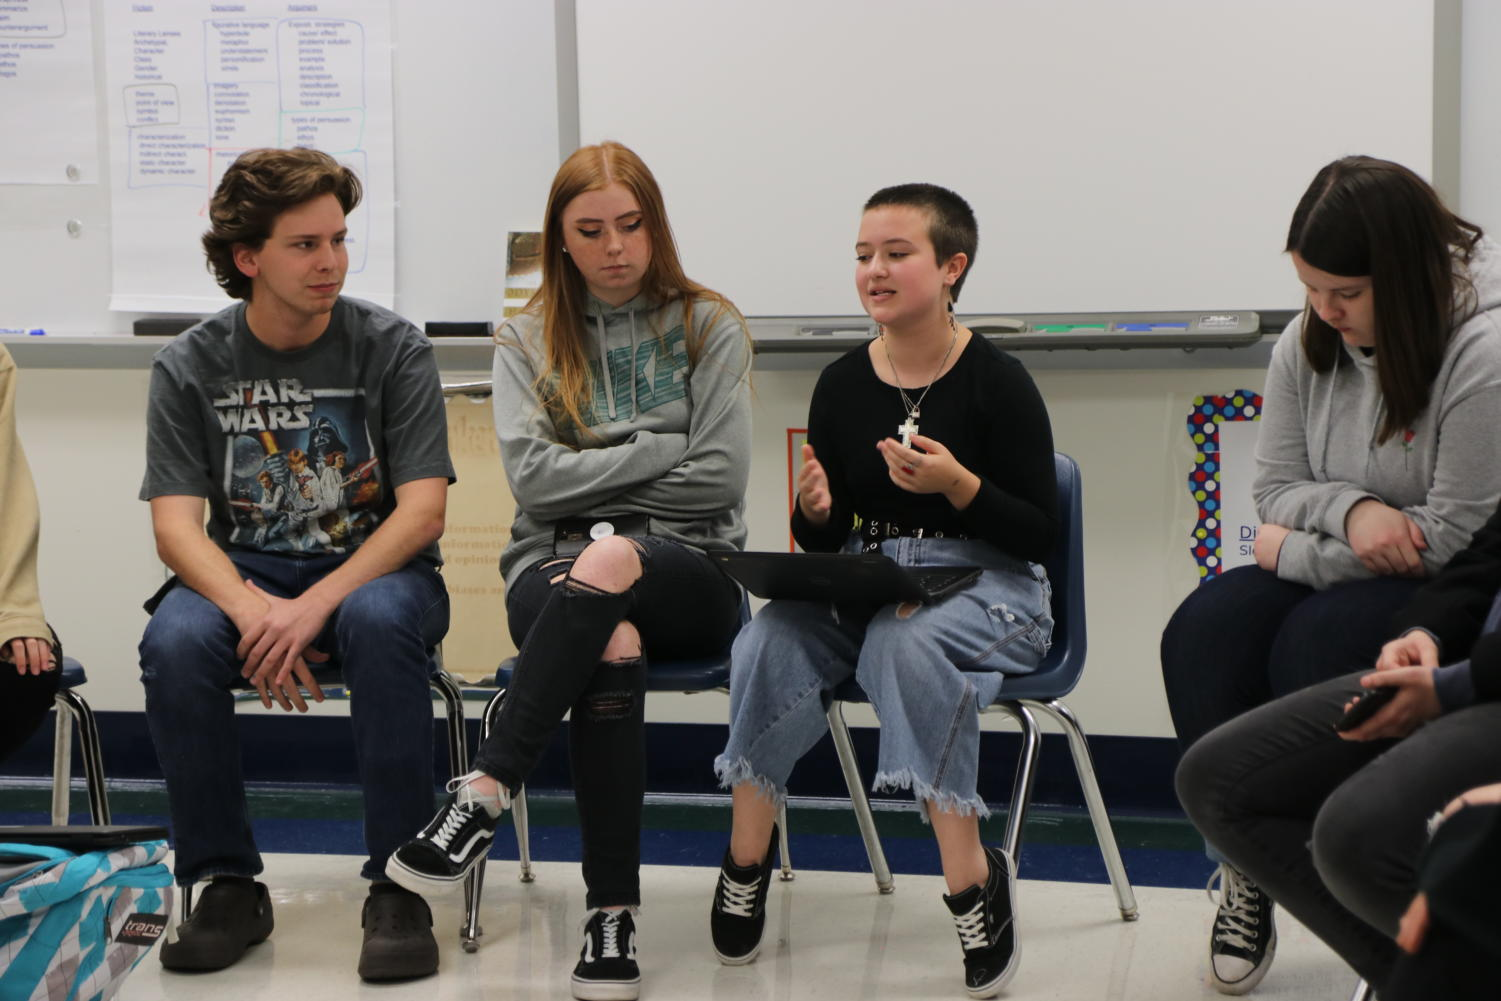 Izabel Cockrum, junior, leads a discussion with students on their experiences with sex education in the RSD. Laura Dorris, junior, sits left of Cockrum.